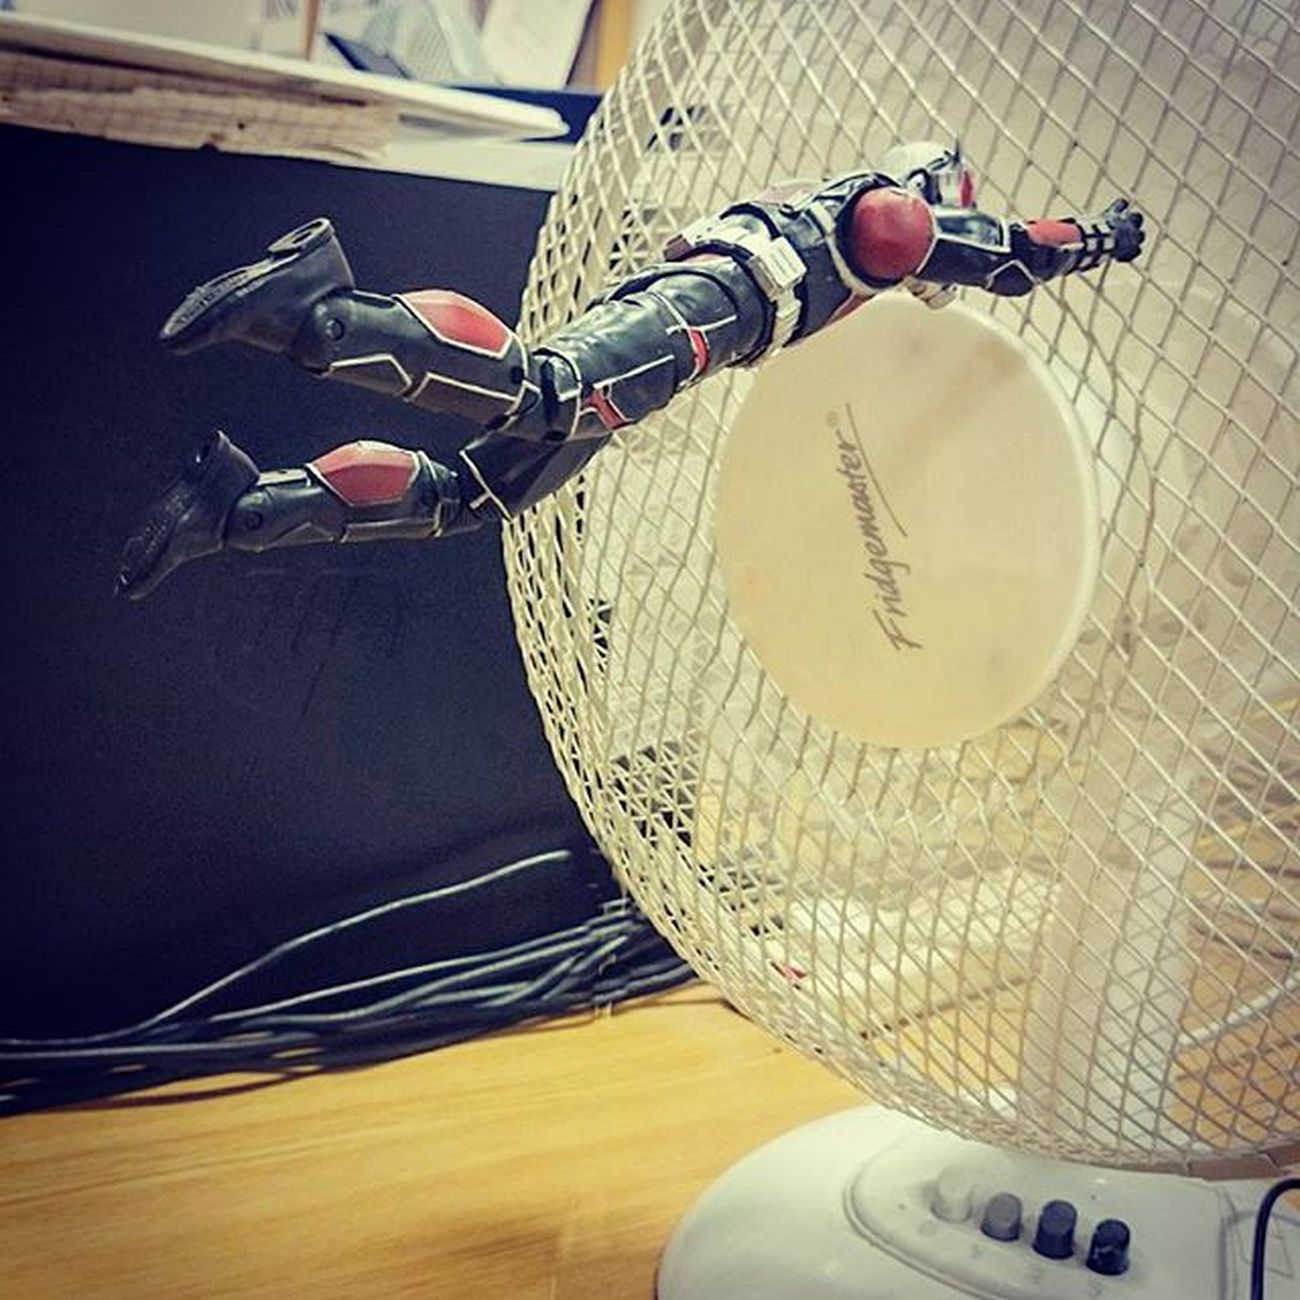 Putting buddy through some resistance training. 👍 JANTMANuary day 16 Toyptoyphotography Toyunion Antman Marvel Marveltoys Toydiscovery Toptoyphotos Epictoyart Toward Toy_syn Toycrewbuddies Toycollectorsunited Toycommunity Wheretoysdwell Justanothertoygroup Toyslagram Toysaremydrug